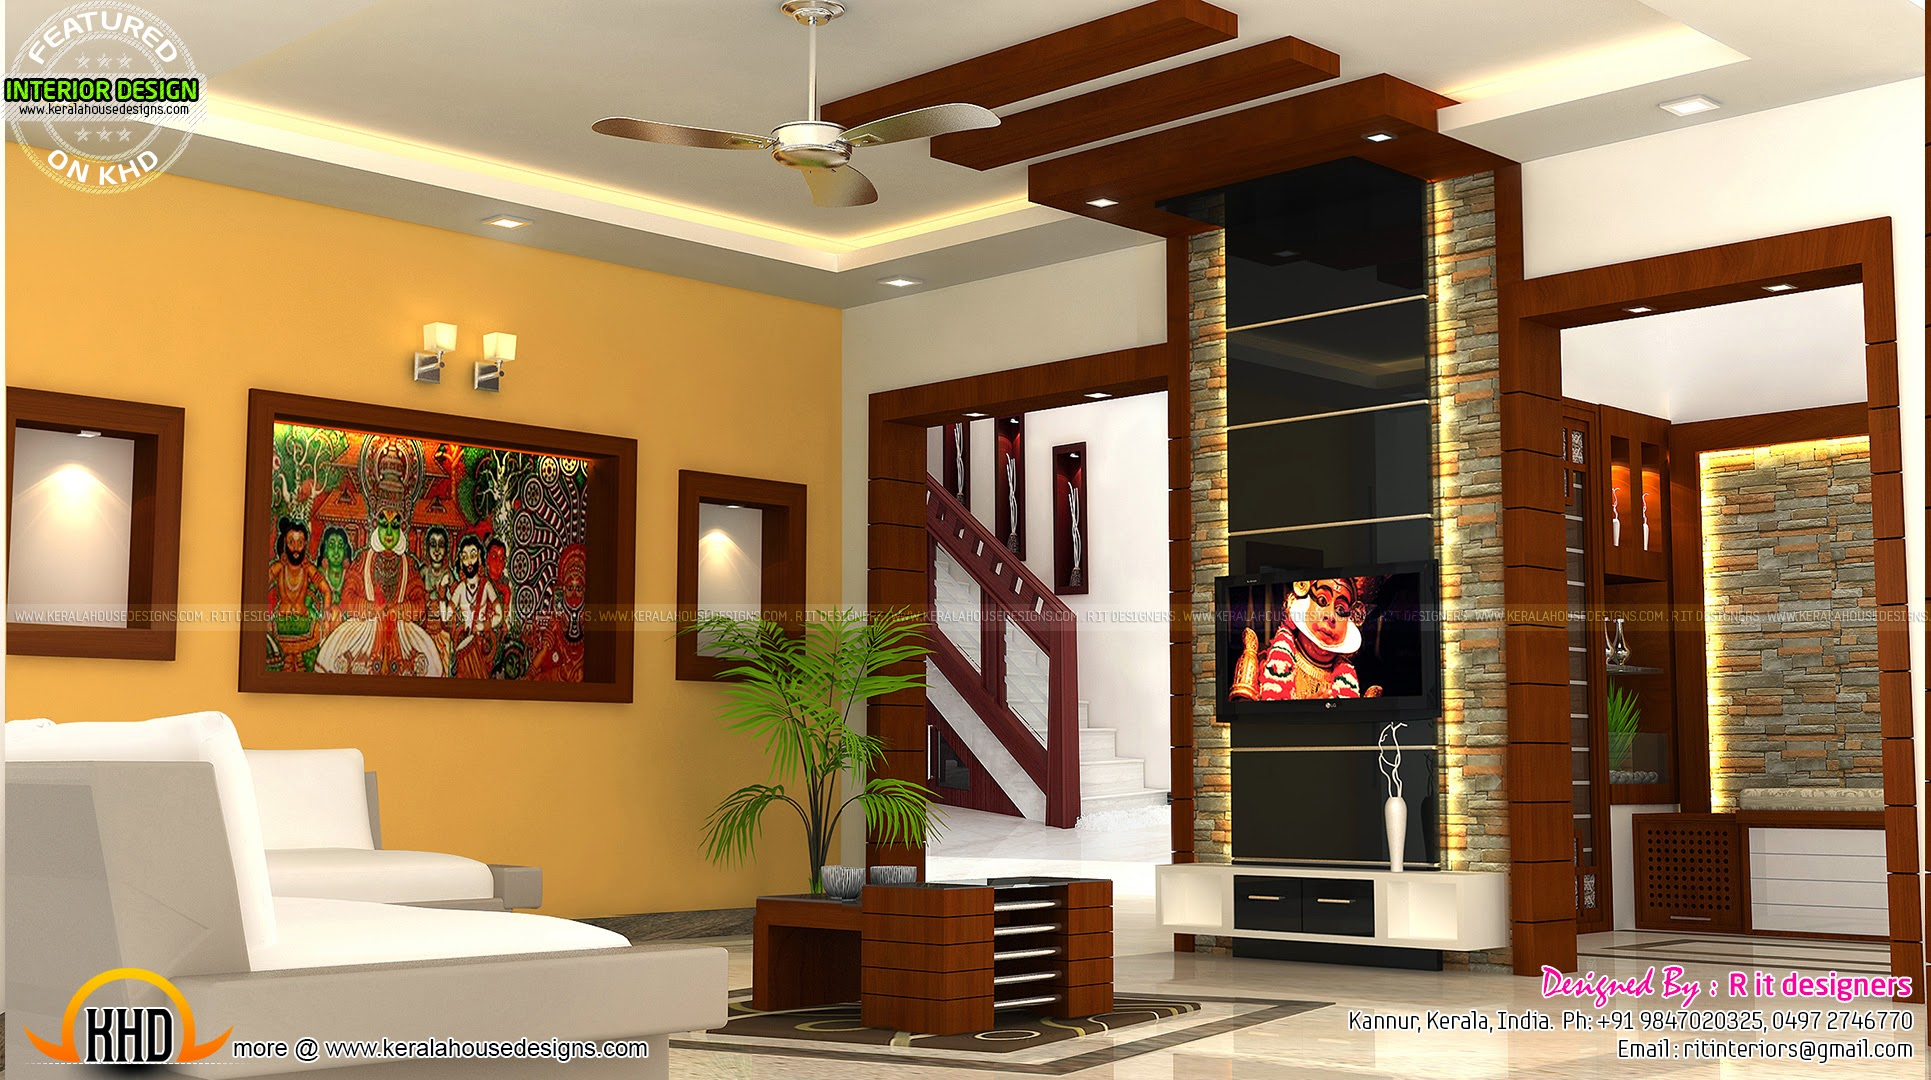 Kerala interior design with cost kerala home design and for Interior designs at home